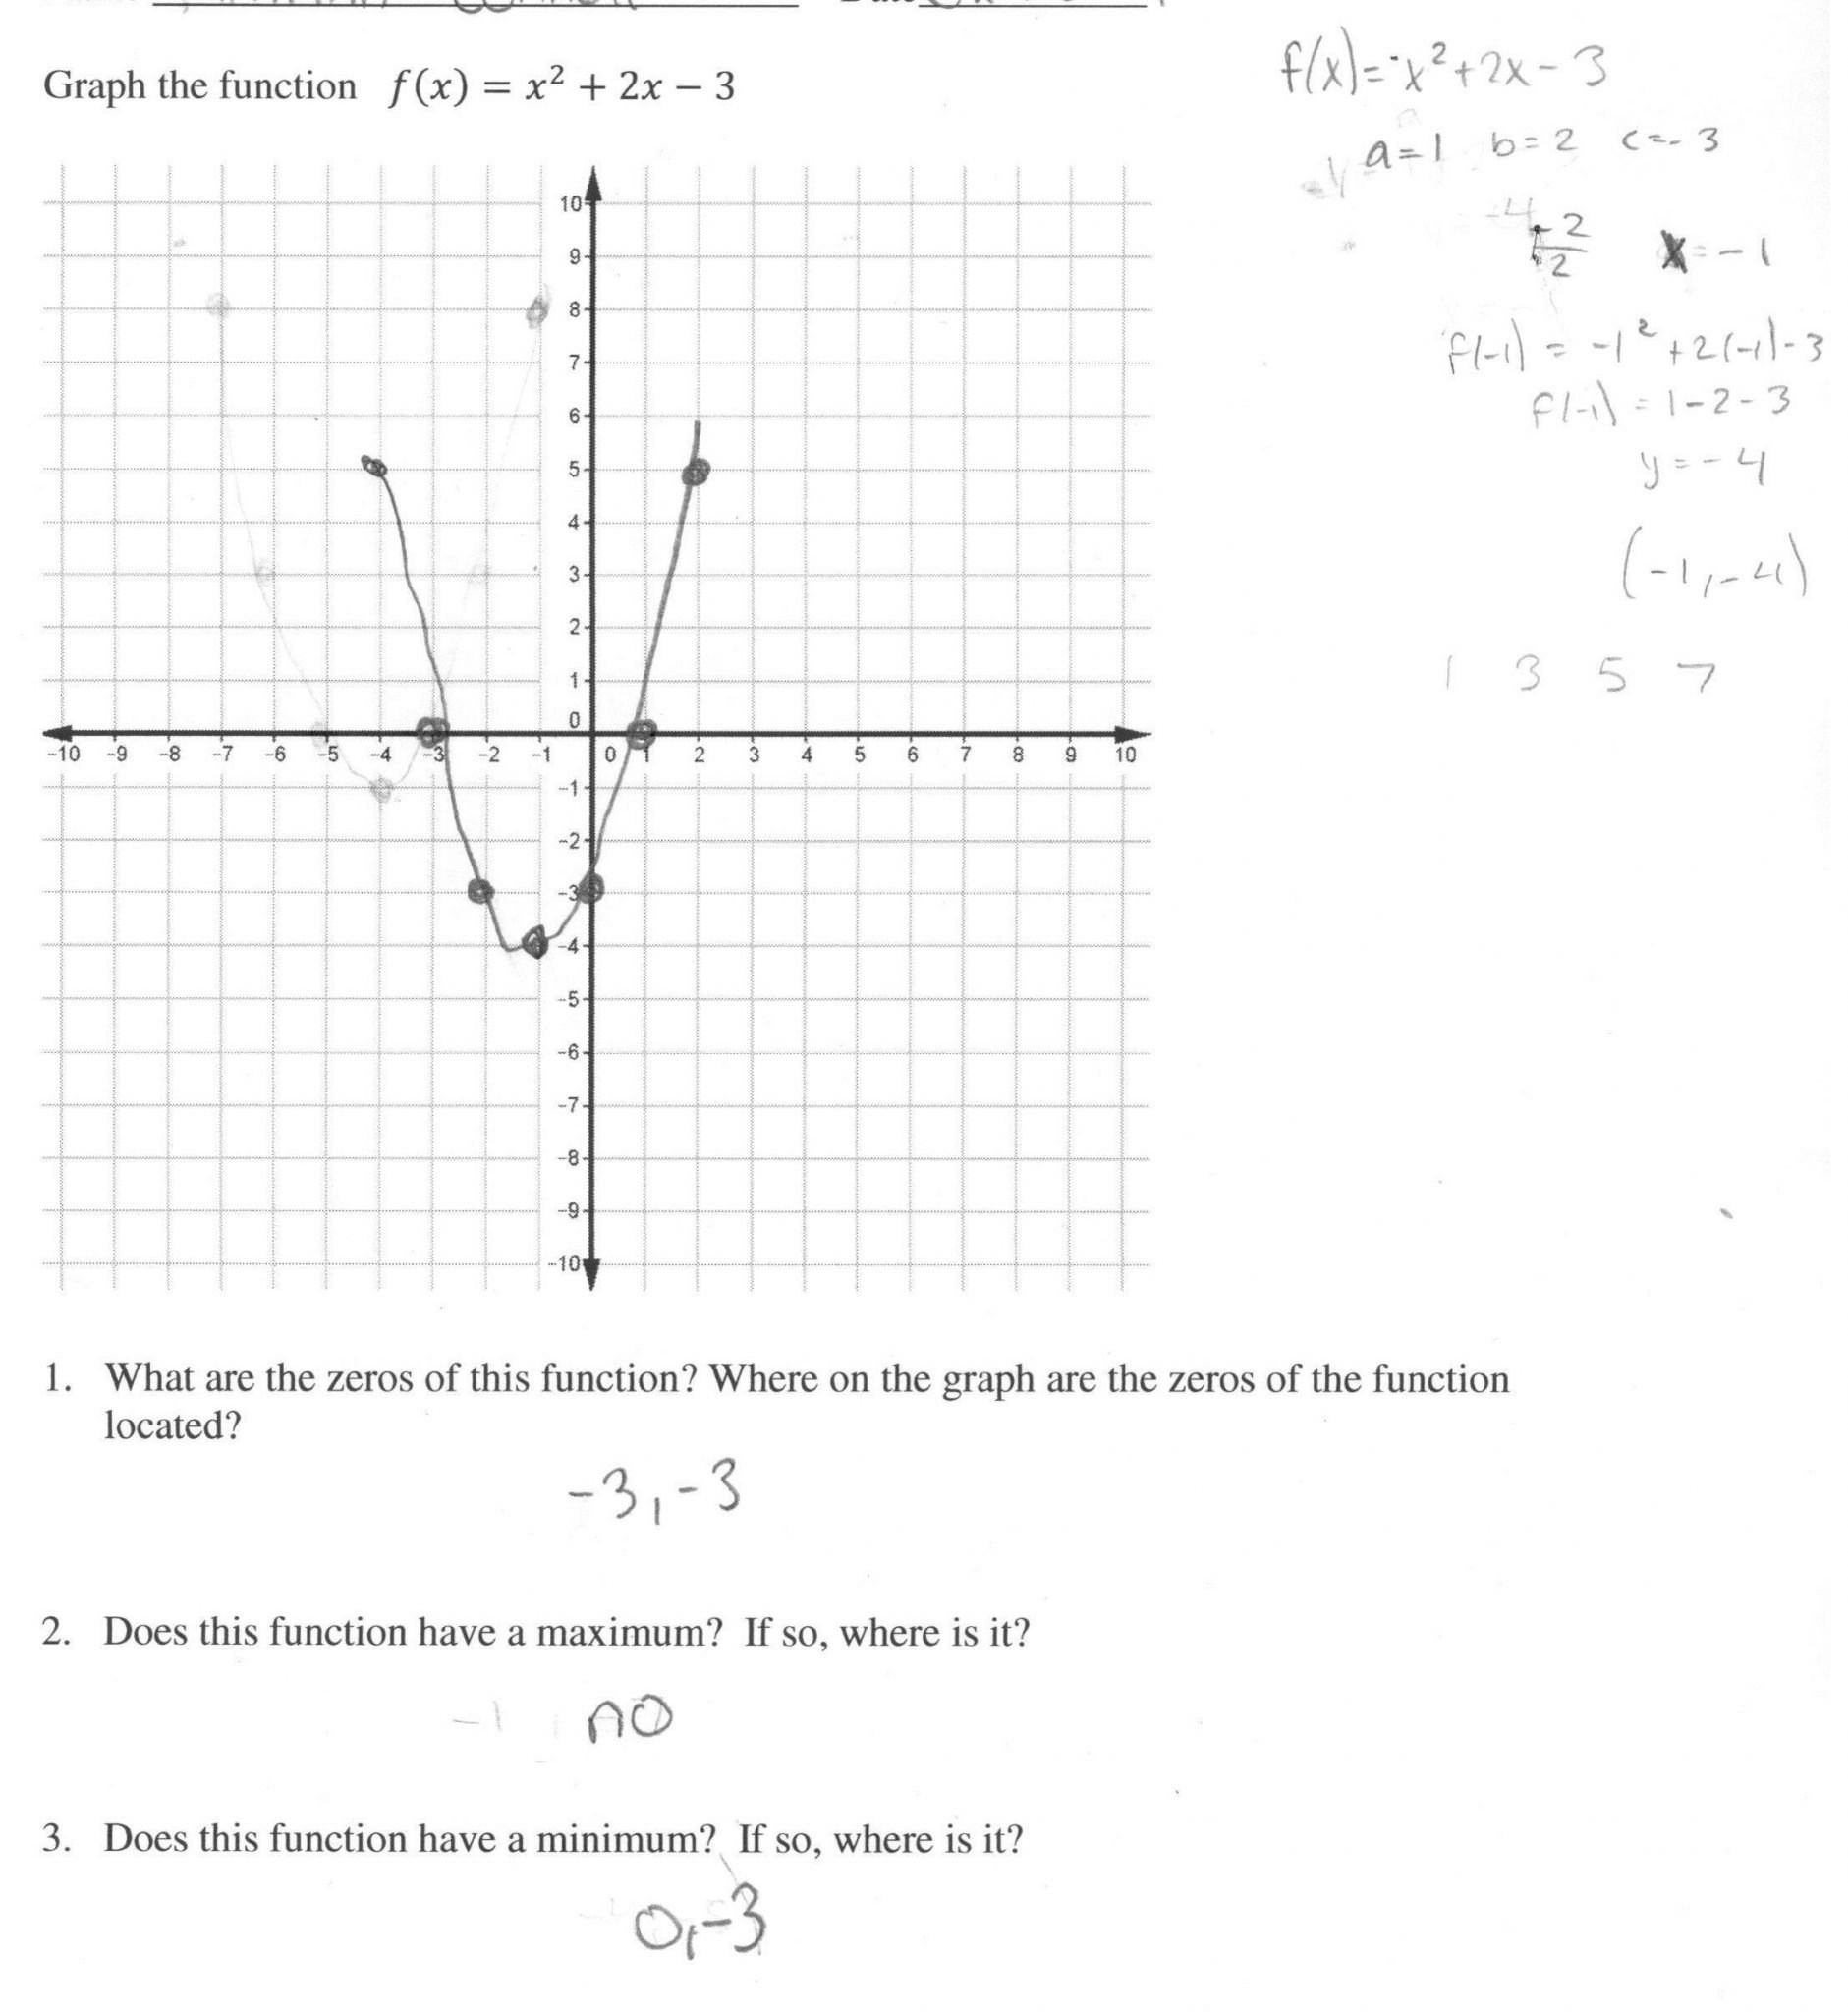 Graphing Quadratics Review Worksheet Answers  Briefencounters Throughout Quadratics Review Worksheet